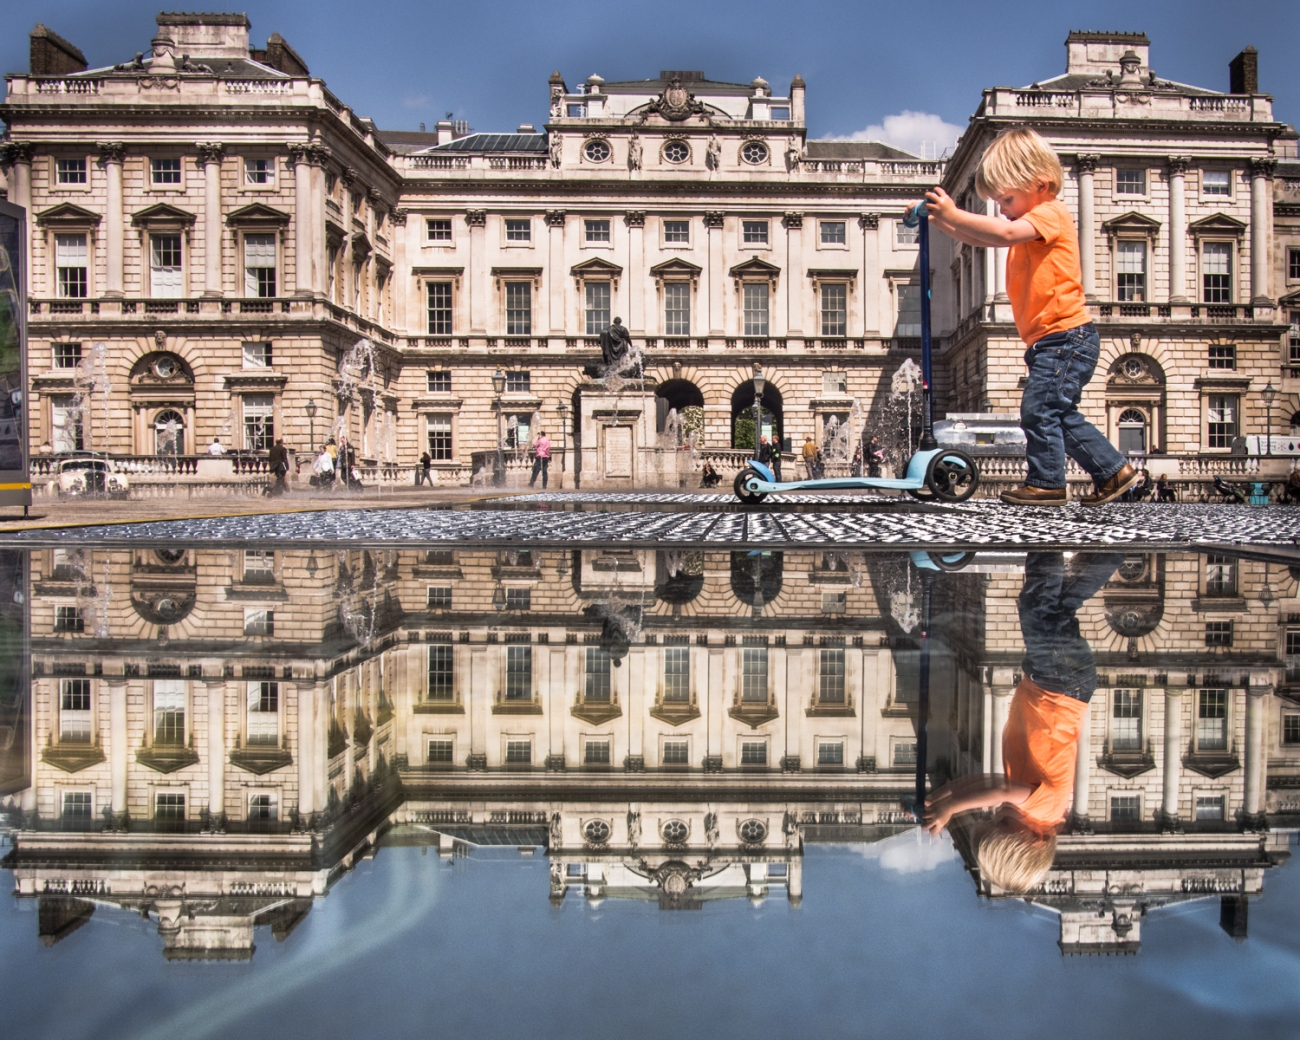 heather buckley - photo london somerset house 2015